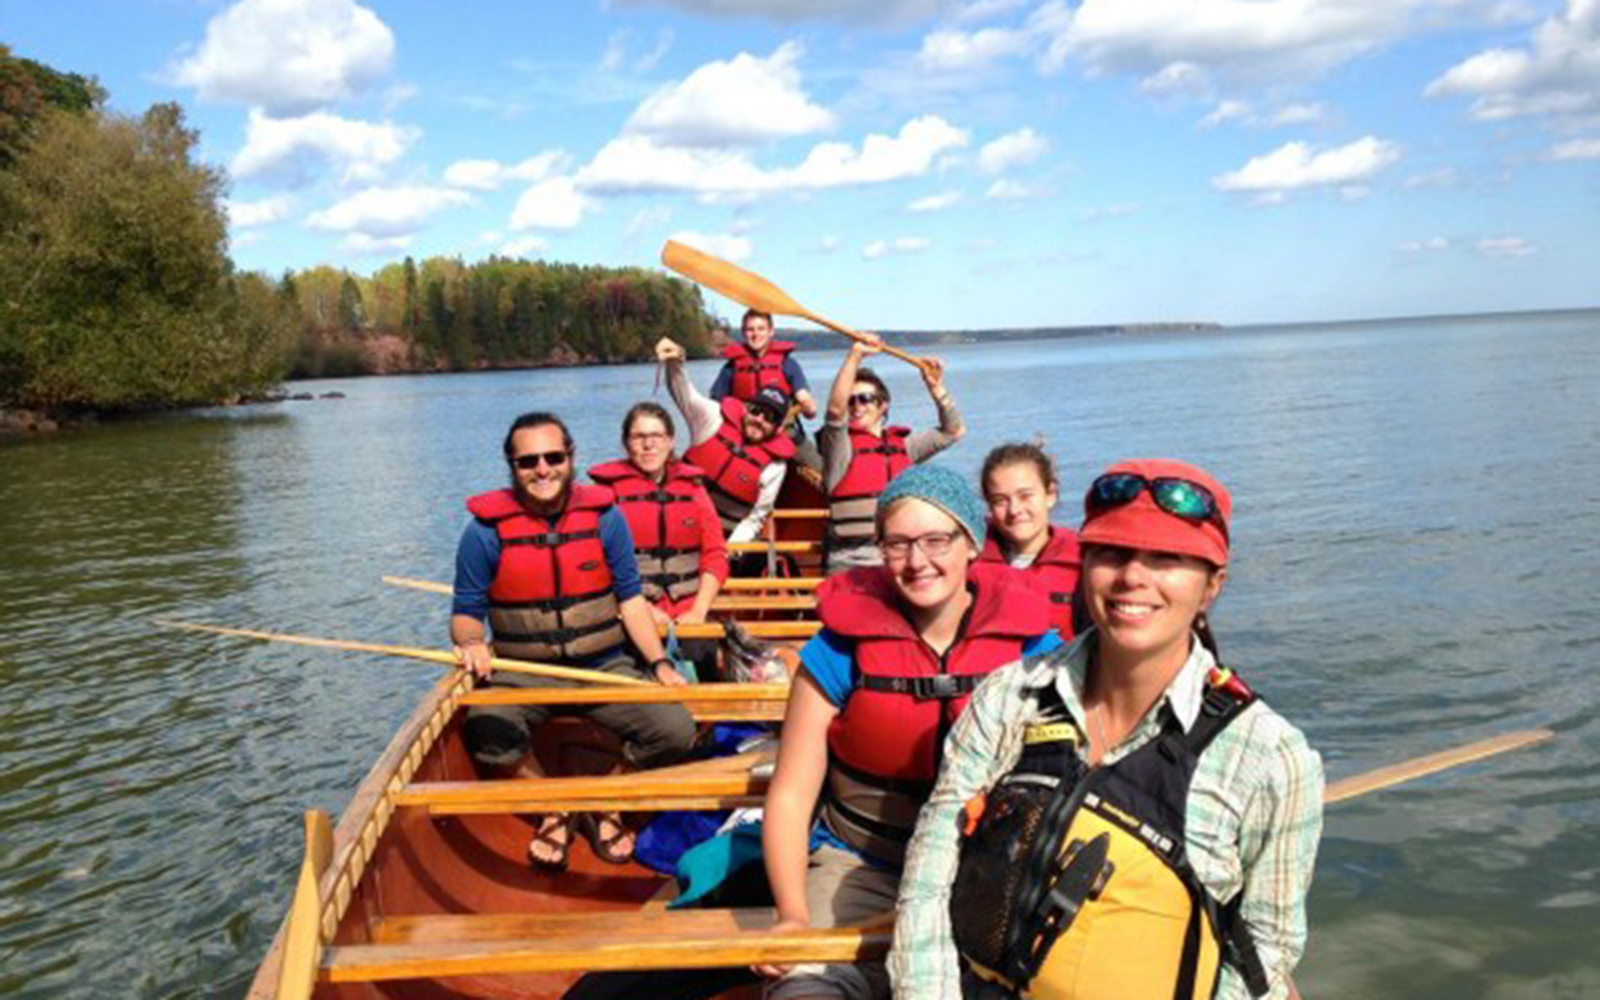 Northland College Professor Elizabeth Andre with students in a voyageur canoe